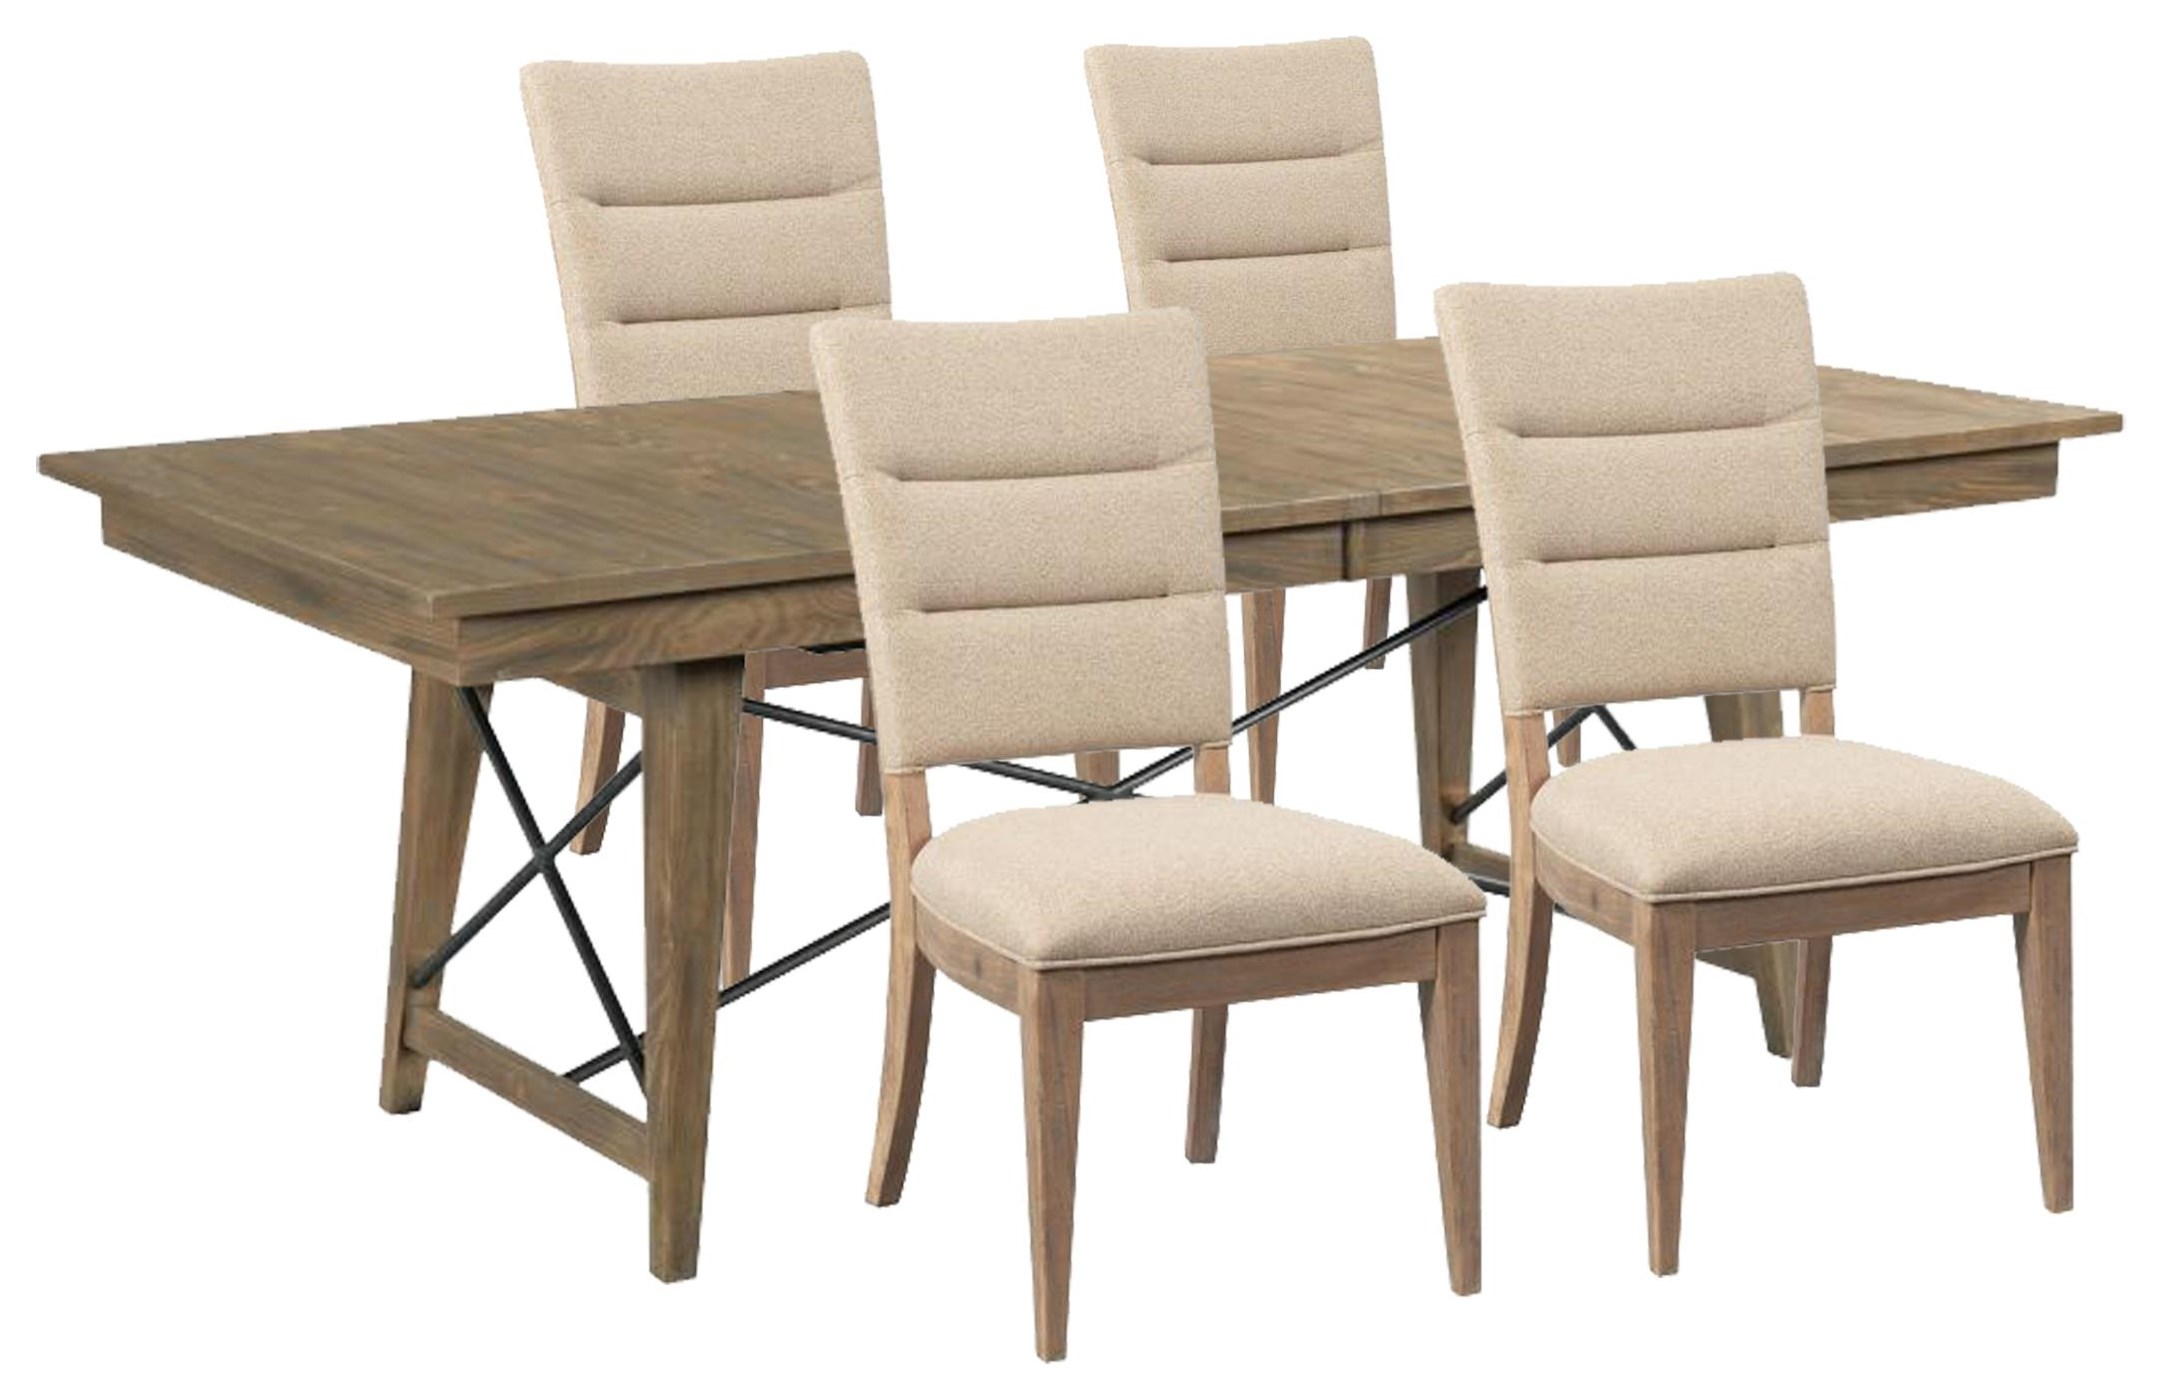 Modern Forge Dining Table and 4 Chairs by Kincaid Furniture at Johnny Janosik